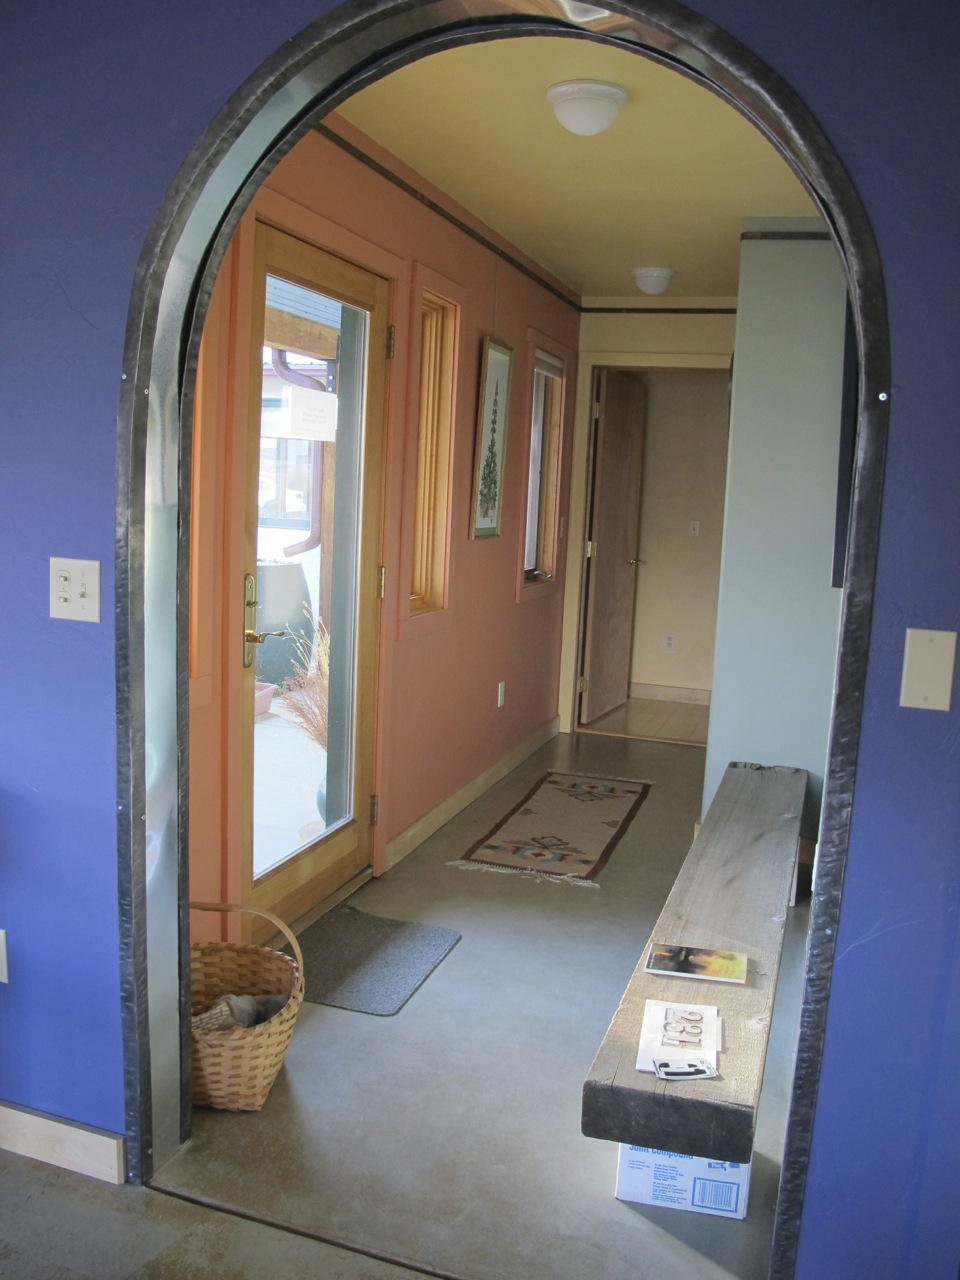 Curving steel arches trim the living room doorway in Terraphilia, my old house.